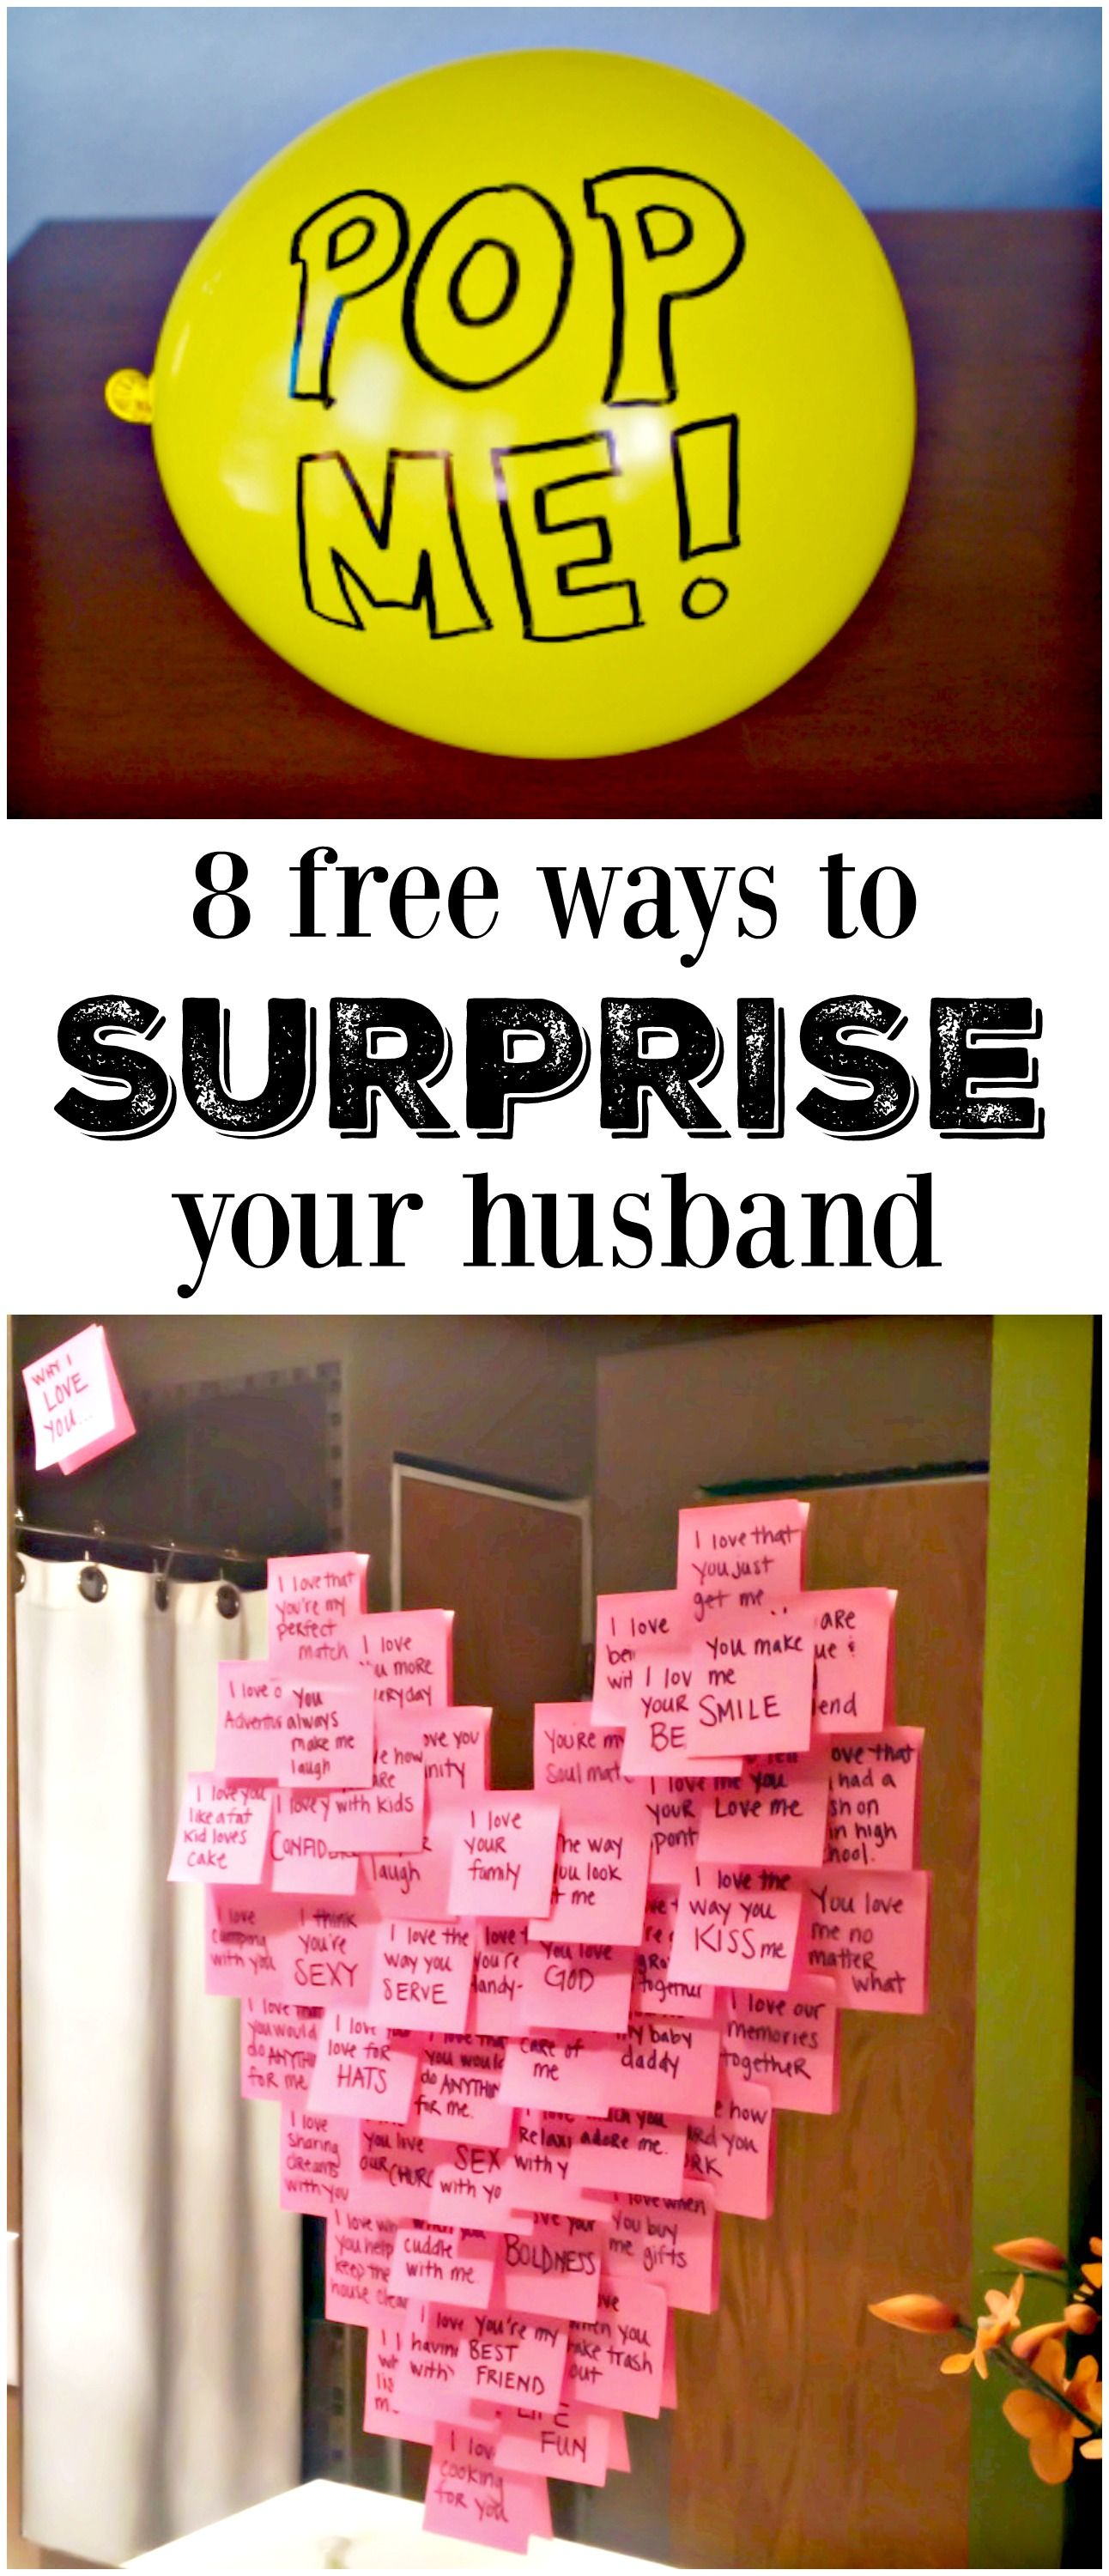 10 Most Popular Valentine Ideas For My Husband 8 meaningful ways to make his day gift ideas regalos de amor